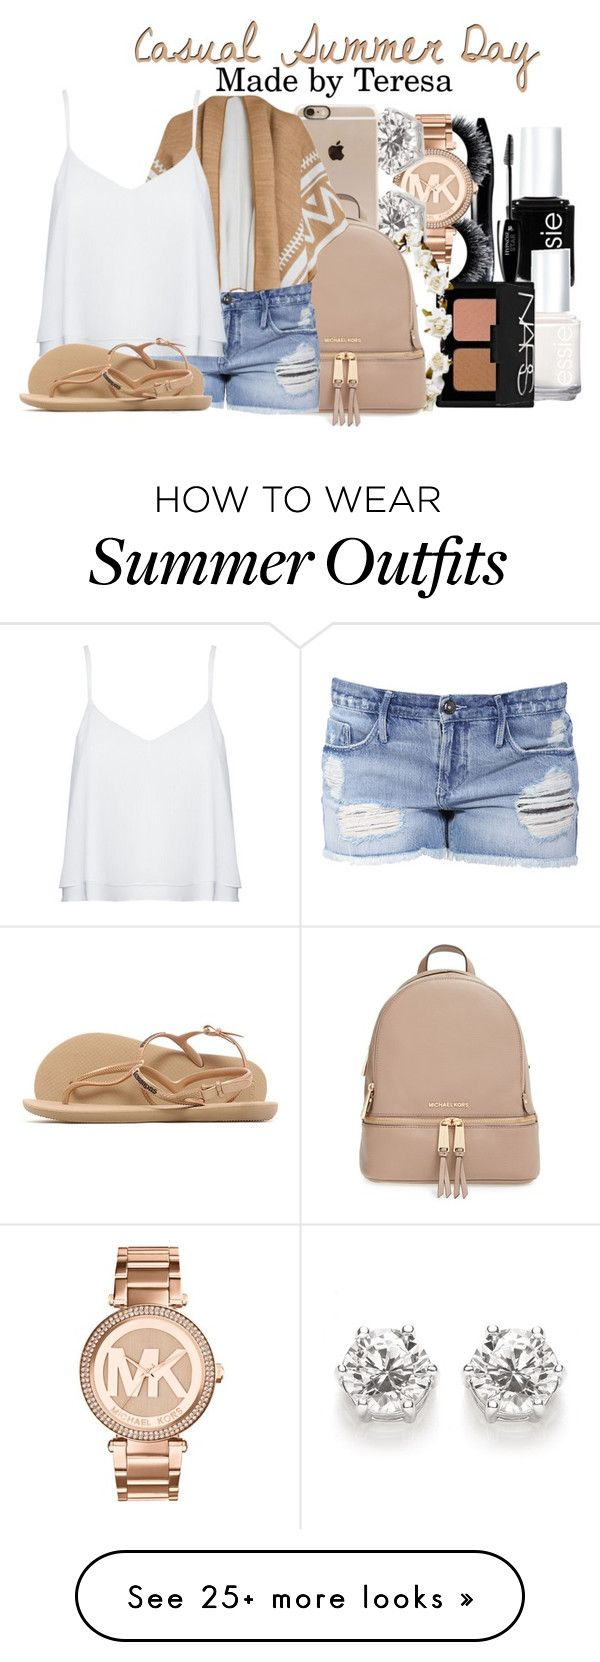 """casual summer day outfit //teresa"" by classy-girls-xo on Polyvore featuring Essie, Lancôme, NARS Cosmetics, Michael Kors, Incase, Cult Gaia, MICHAEL Michael Kors, Black Orchid, Alice + Olivia and Havaianas"